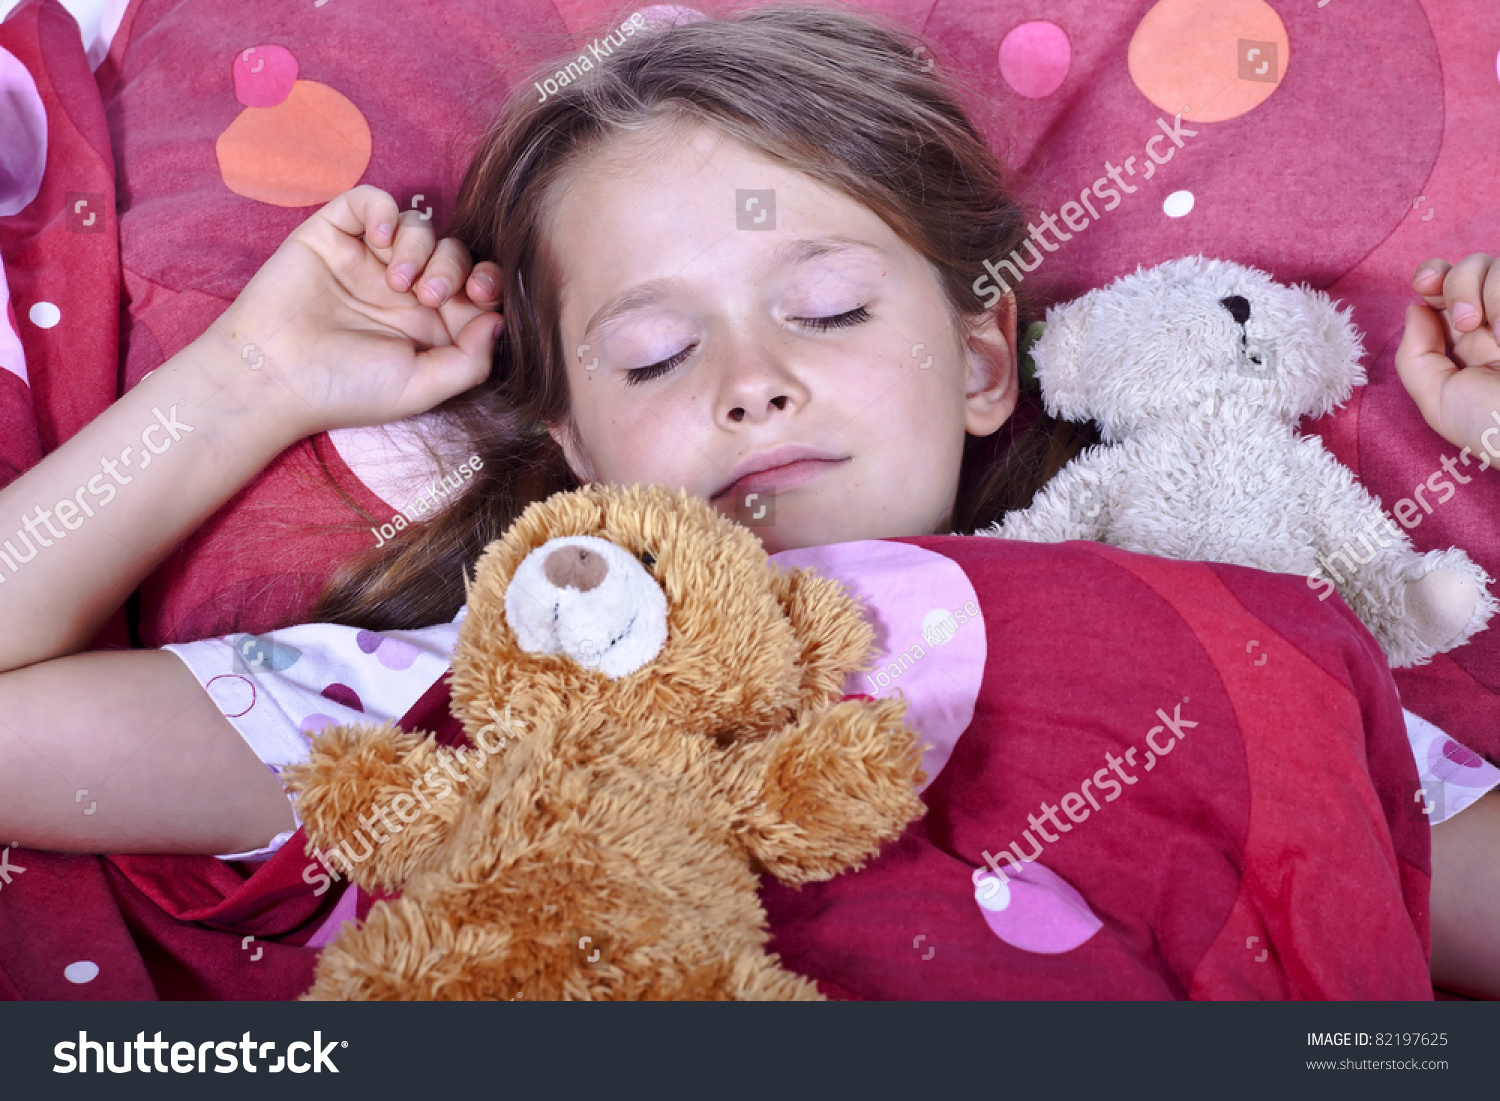 an eight year old girl in bed with blanket and pillows and stuffed animals stock photo 82197625. Black Bedroom Furniture Sets. Home Design Ideas